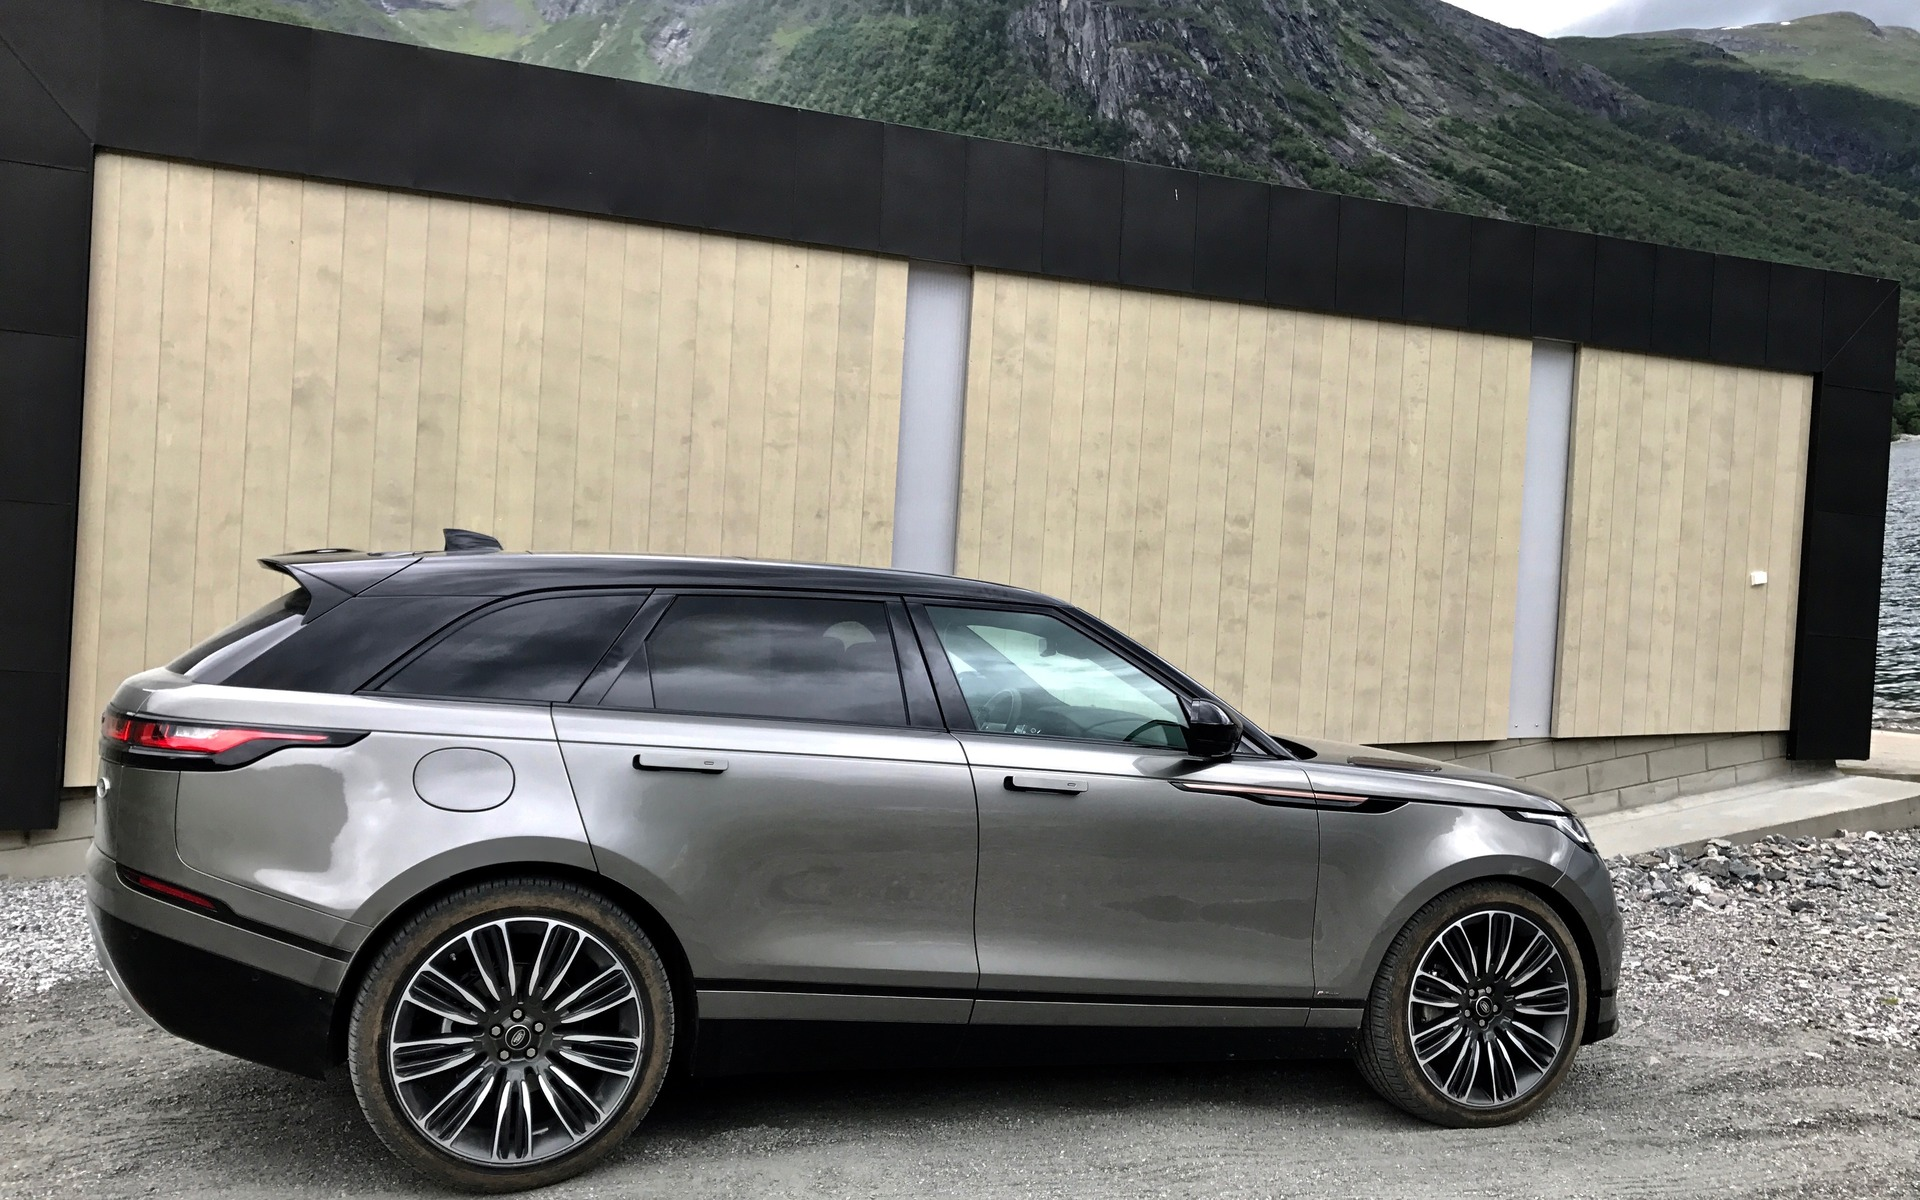 2018 Range Rover Velar: A Distinguished Off-roader - 29/34